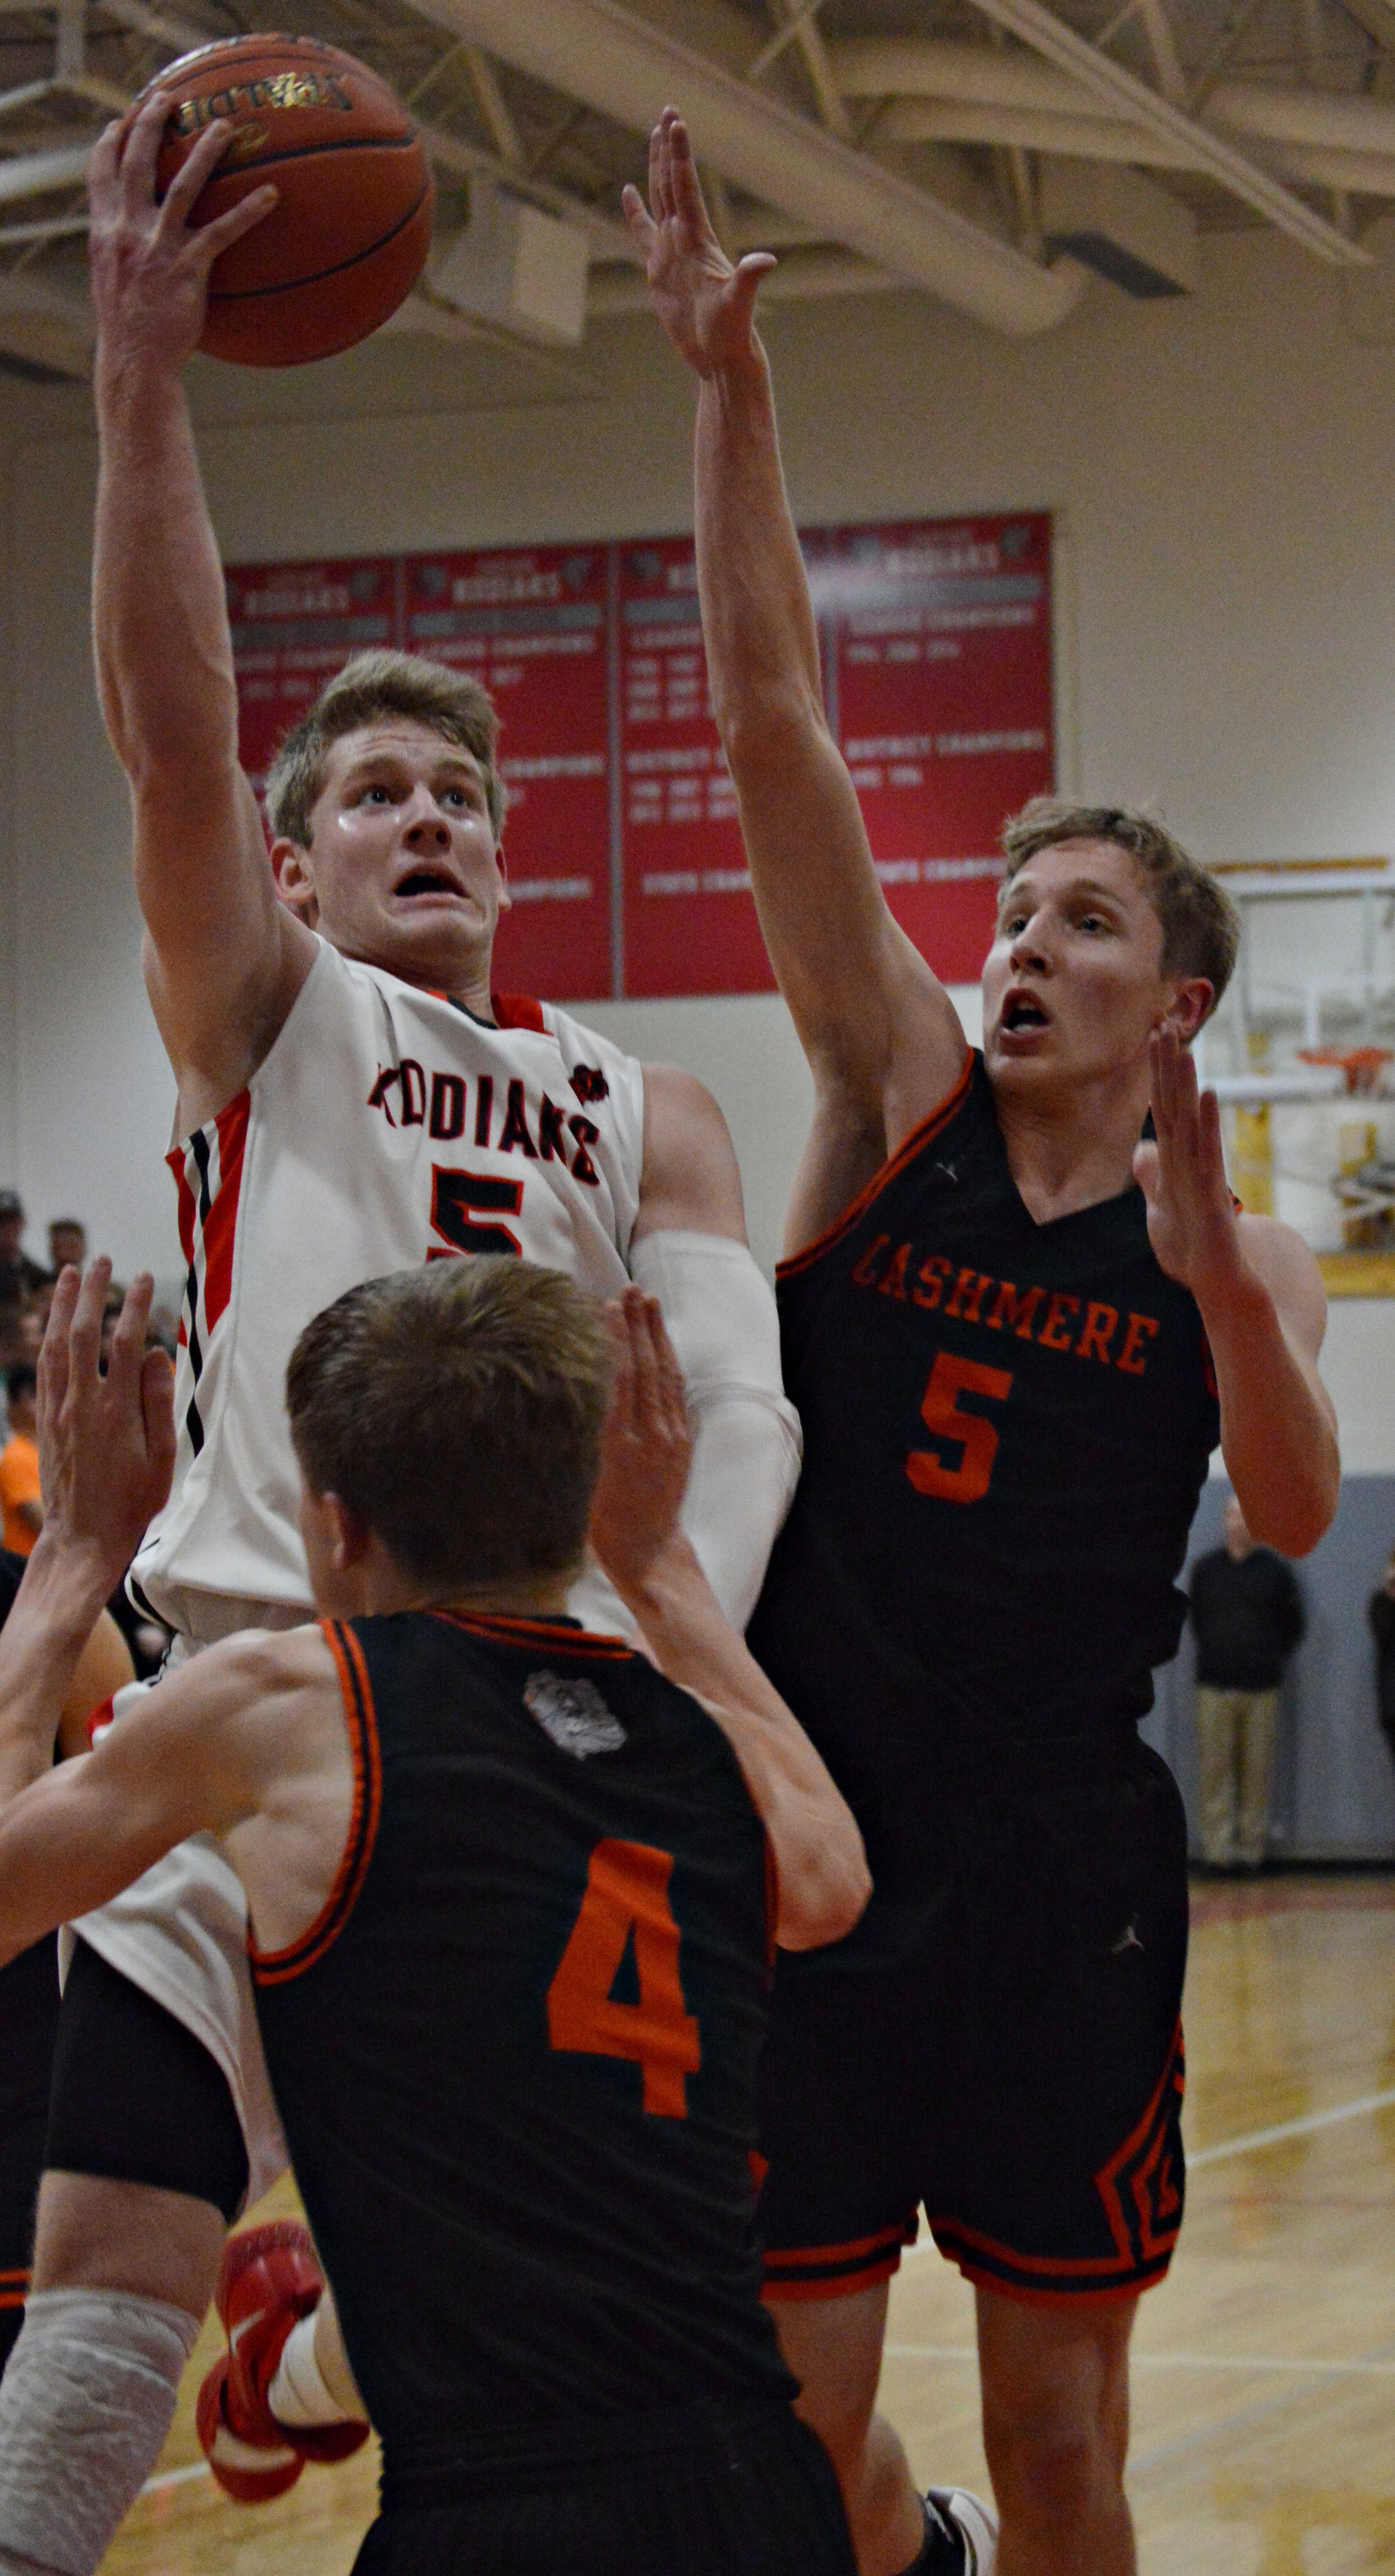 Cole Warnaca goes for two while covered by Cashmere defenders.